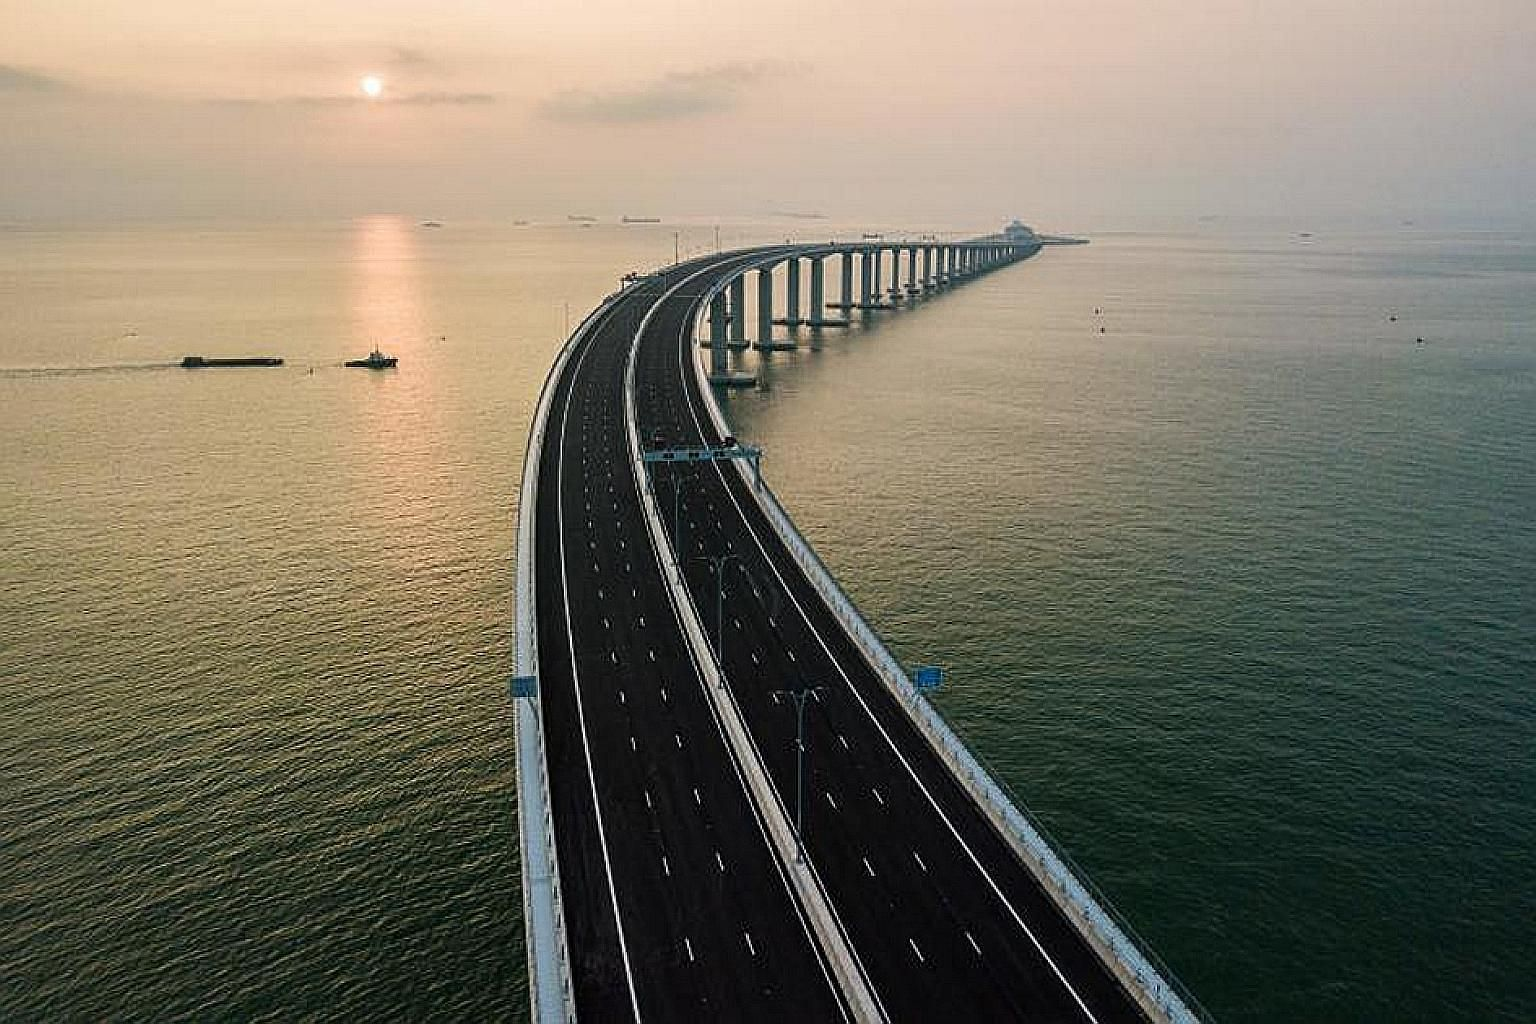 An aerial view of the Hong Kong-Zhuhai-Macau Bridge. China's Greater Bay Area plan includes nine cities in southern Guangdong province, Hong Kong and Macau. In creating a mega city cluster around the Pearl River Delta area, China aims to create an in